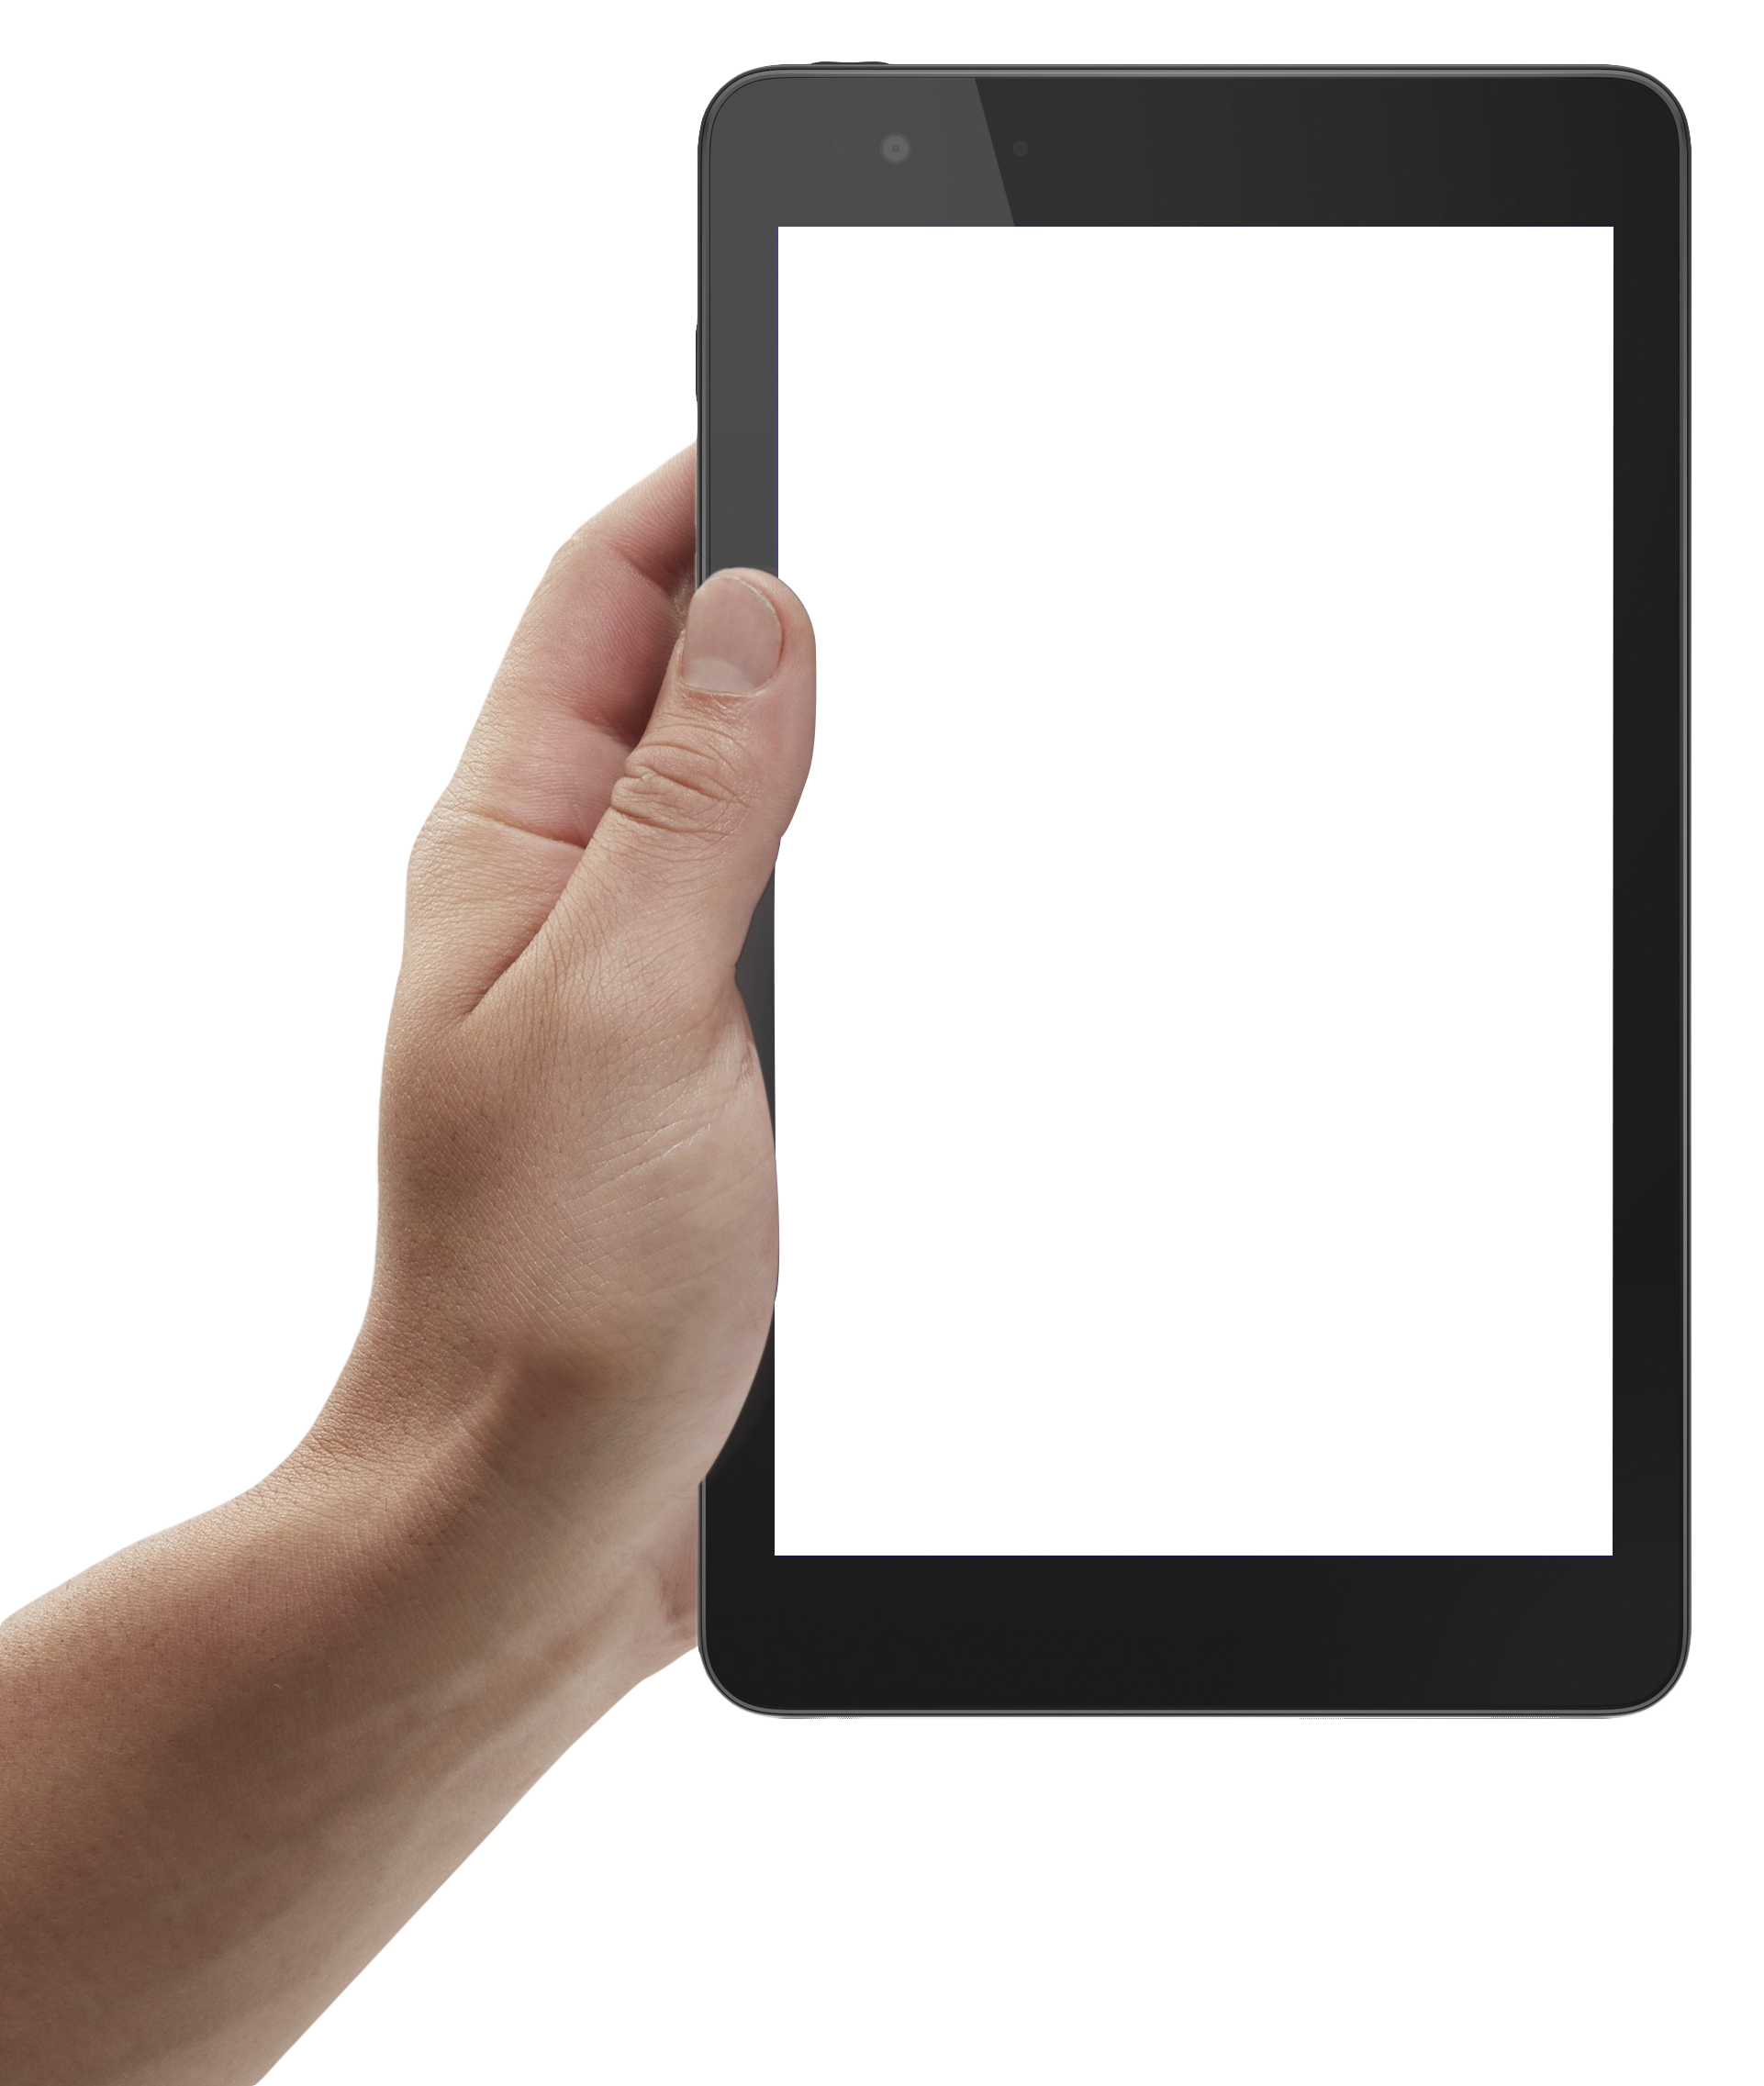 Hand Holding Tablet PNG Image